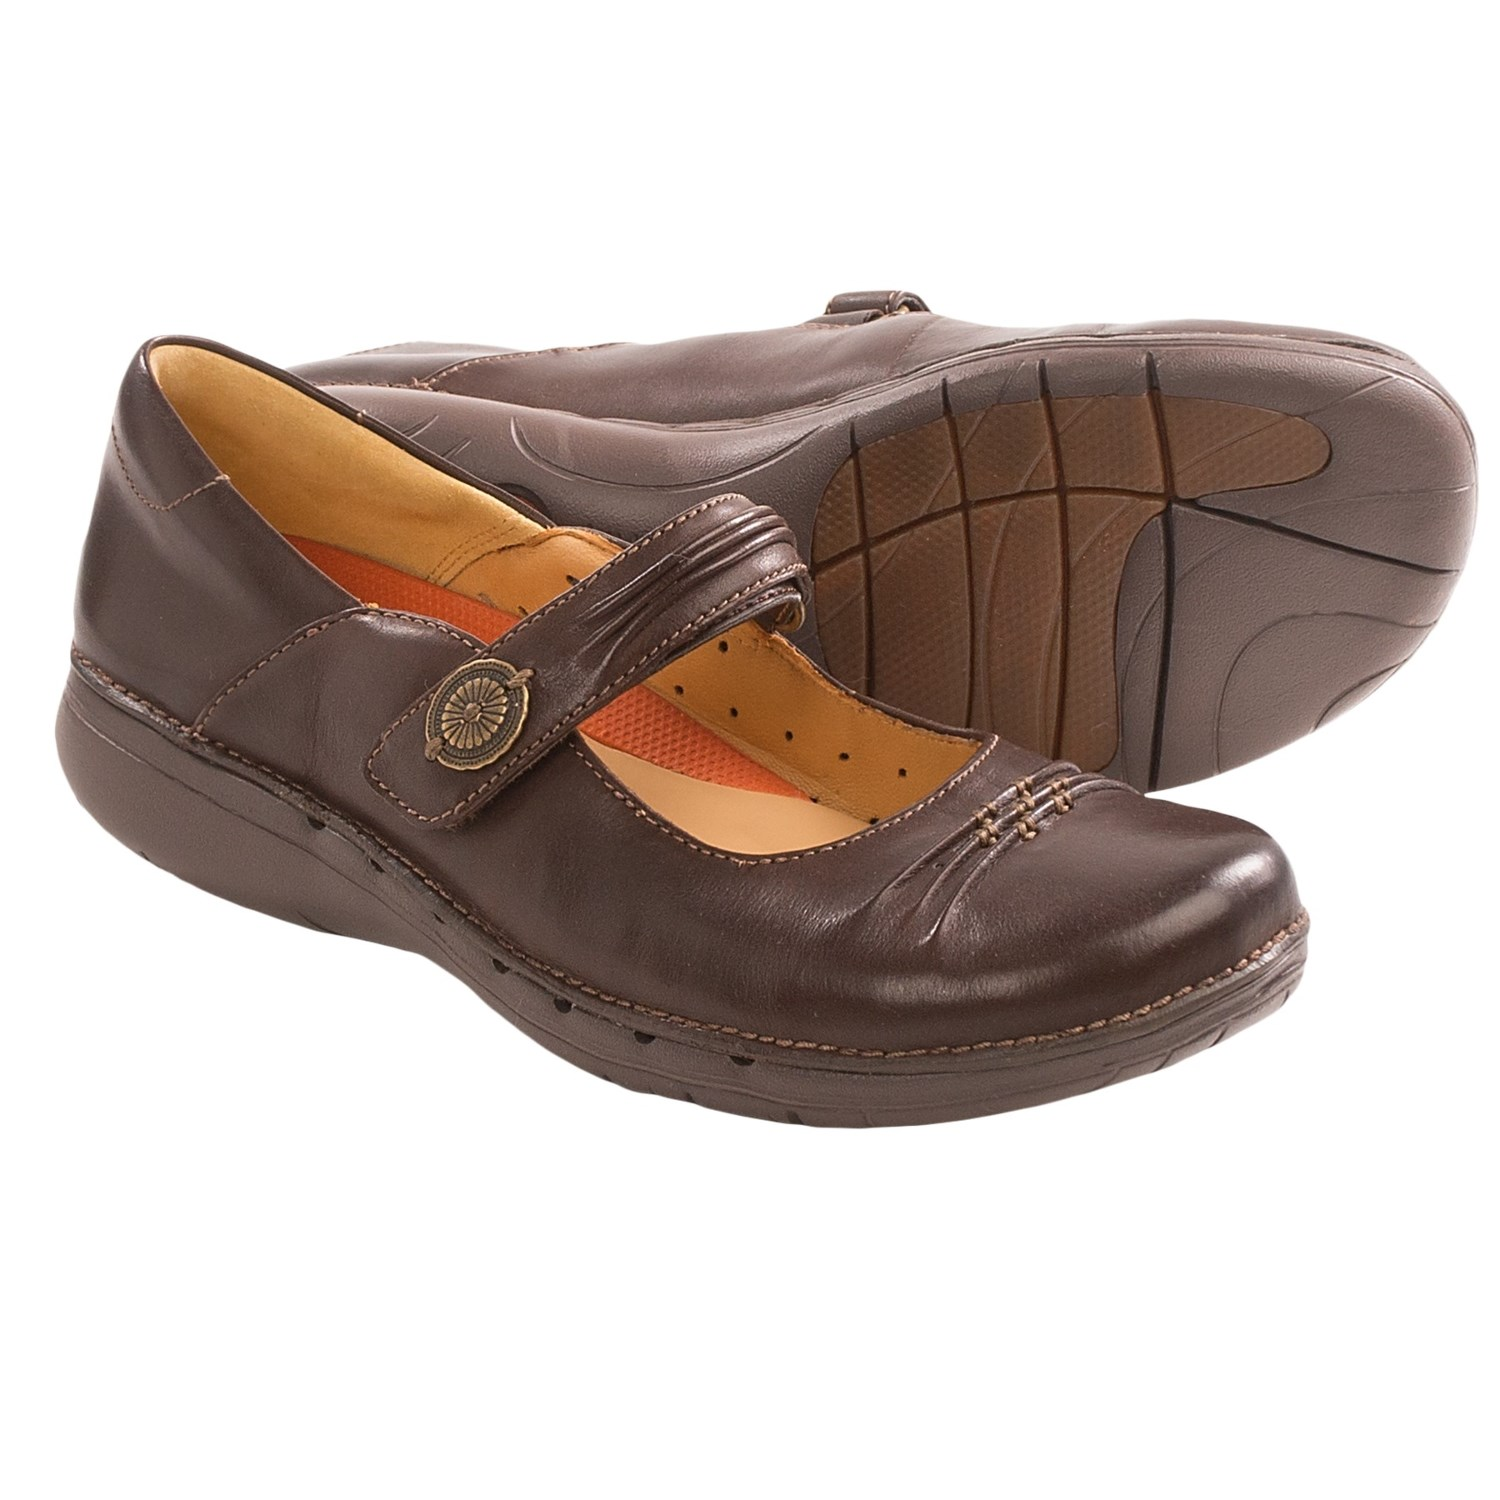 Clarks Un.Linda Mary Jane Shoes (For Women) in Dark Brown Leather